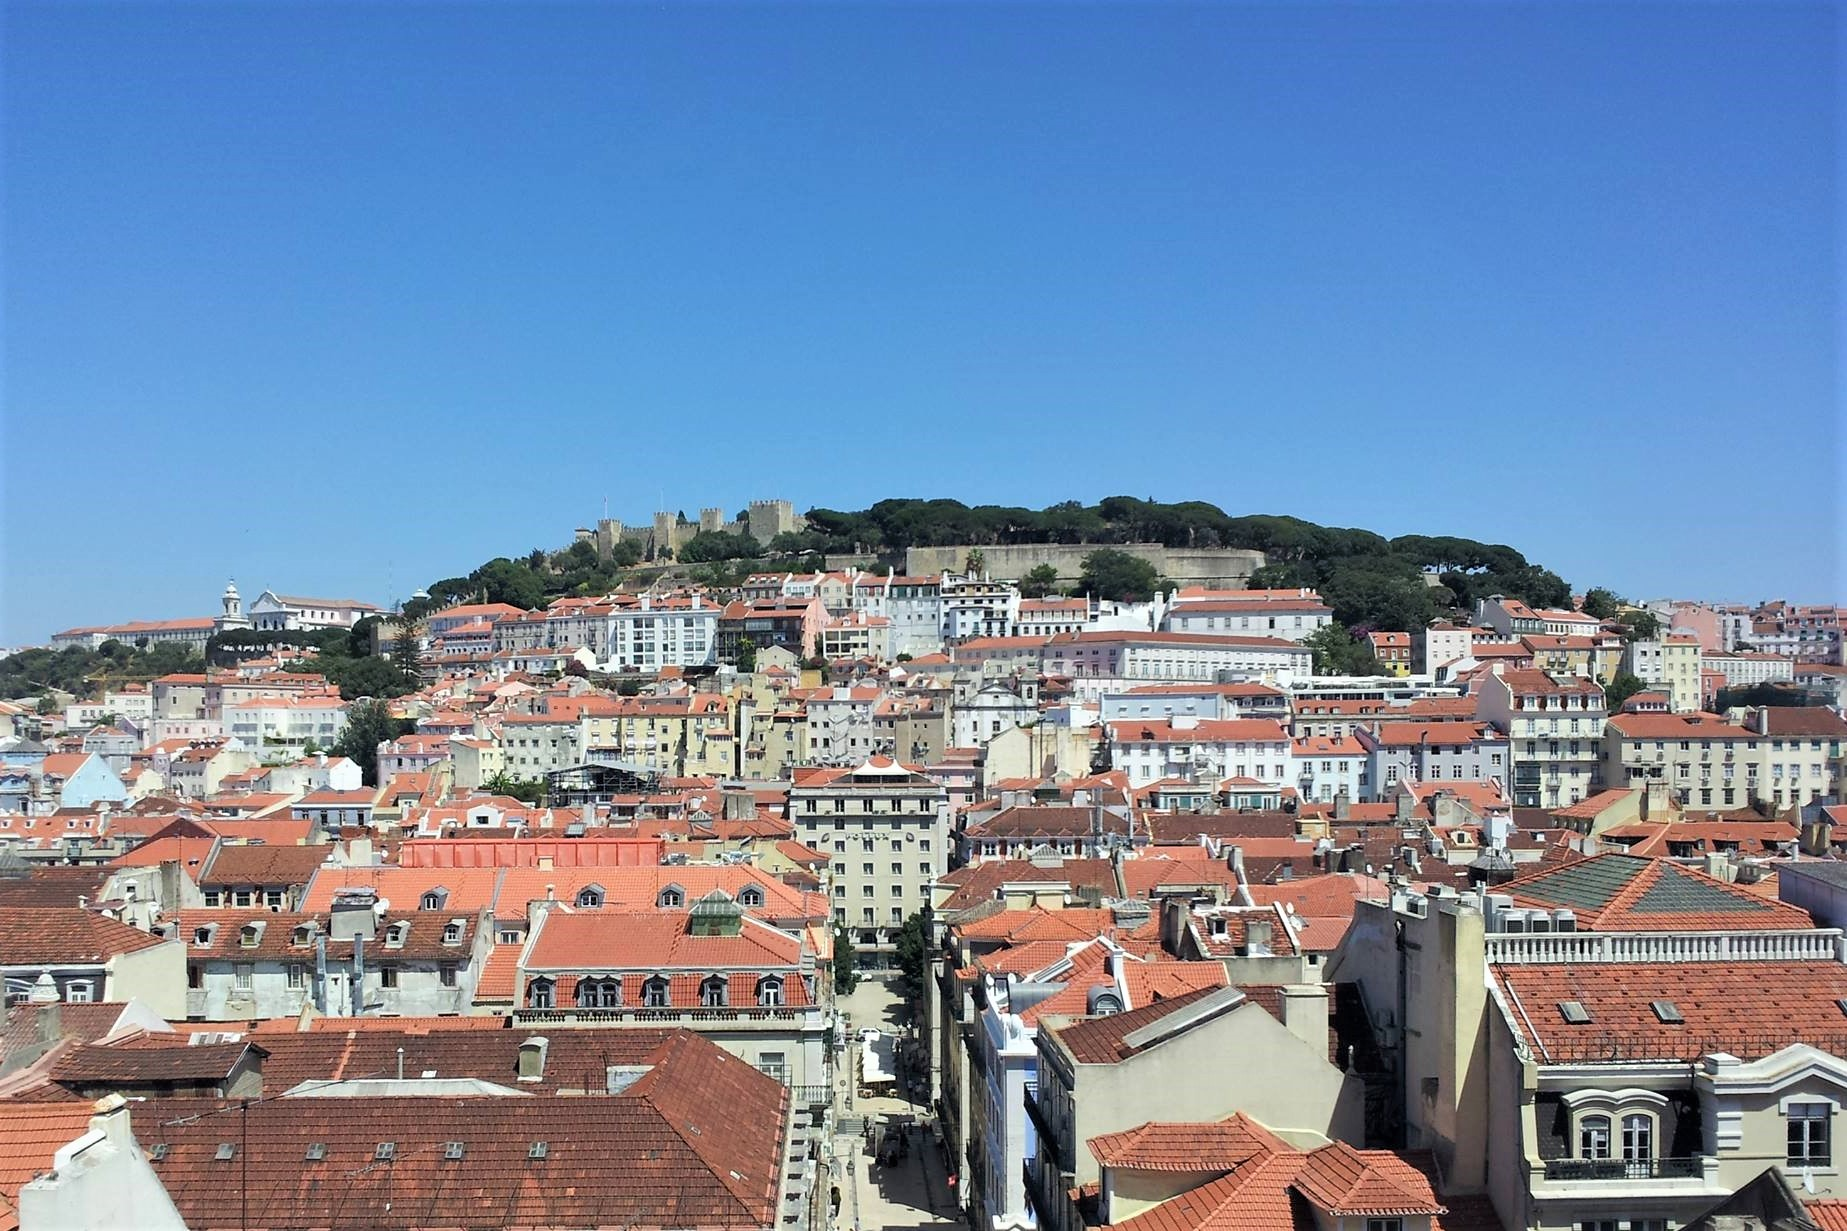 The modern-day city of Lisbon